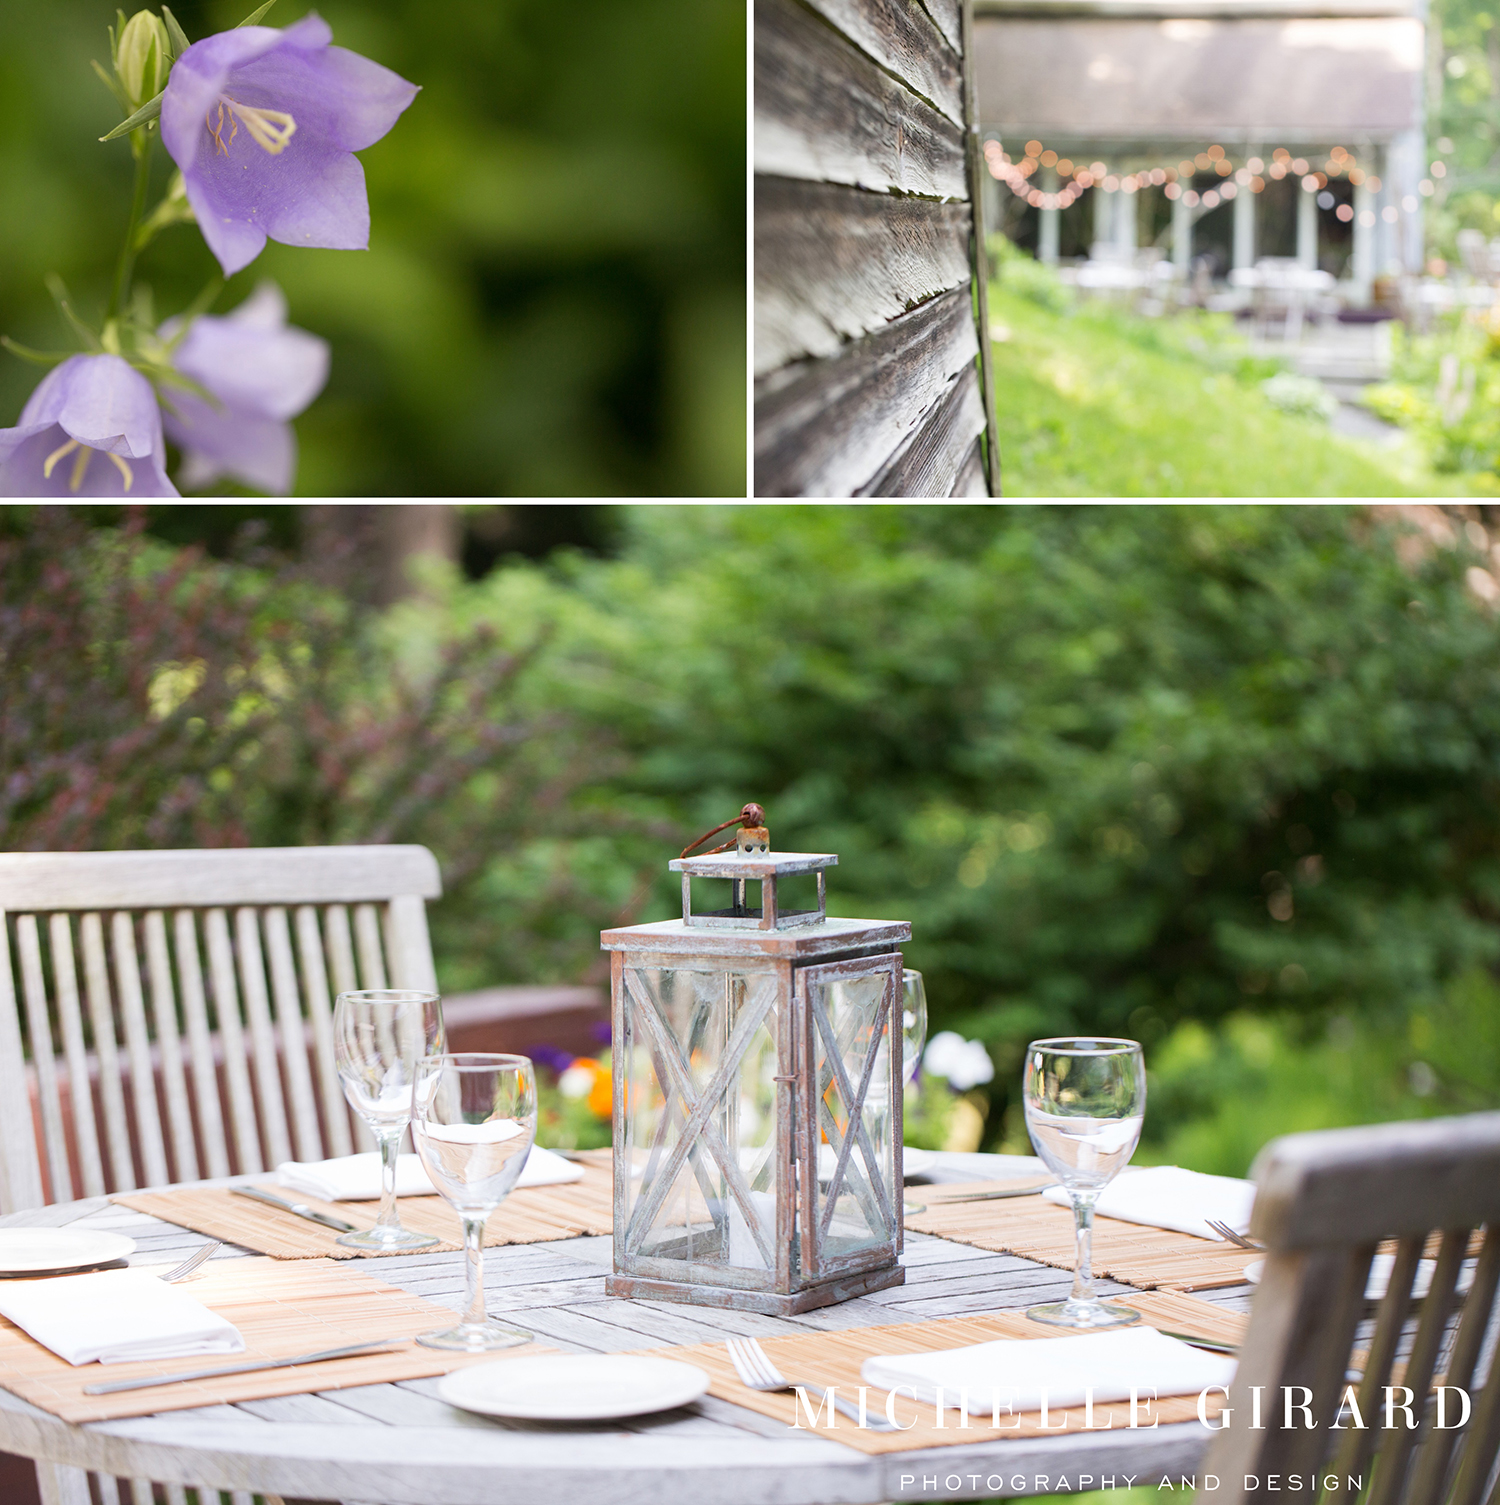 John Andrews Farmhouse Restaurant John Andrews Farmhouse Restaurant Berkshire County